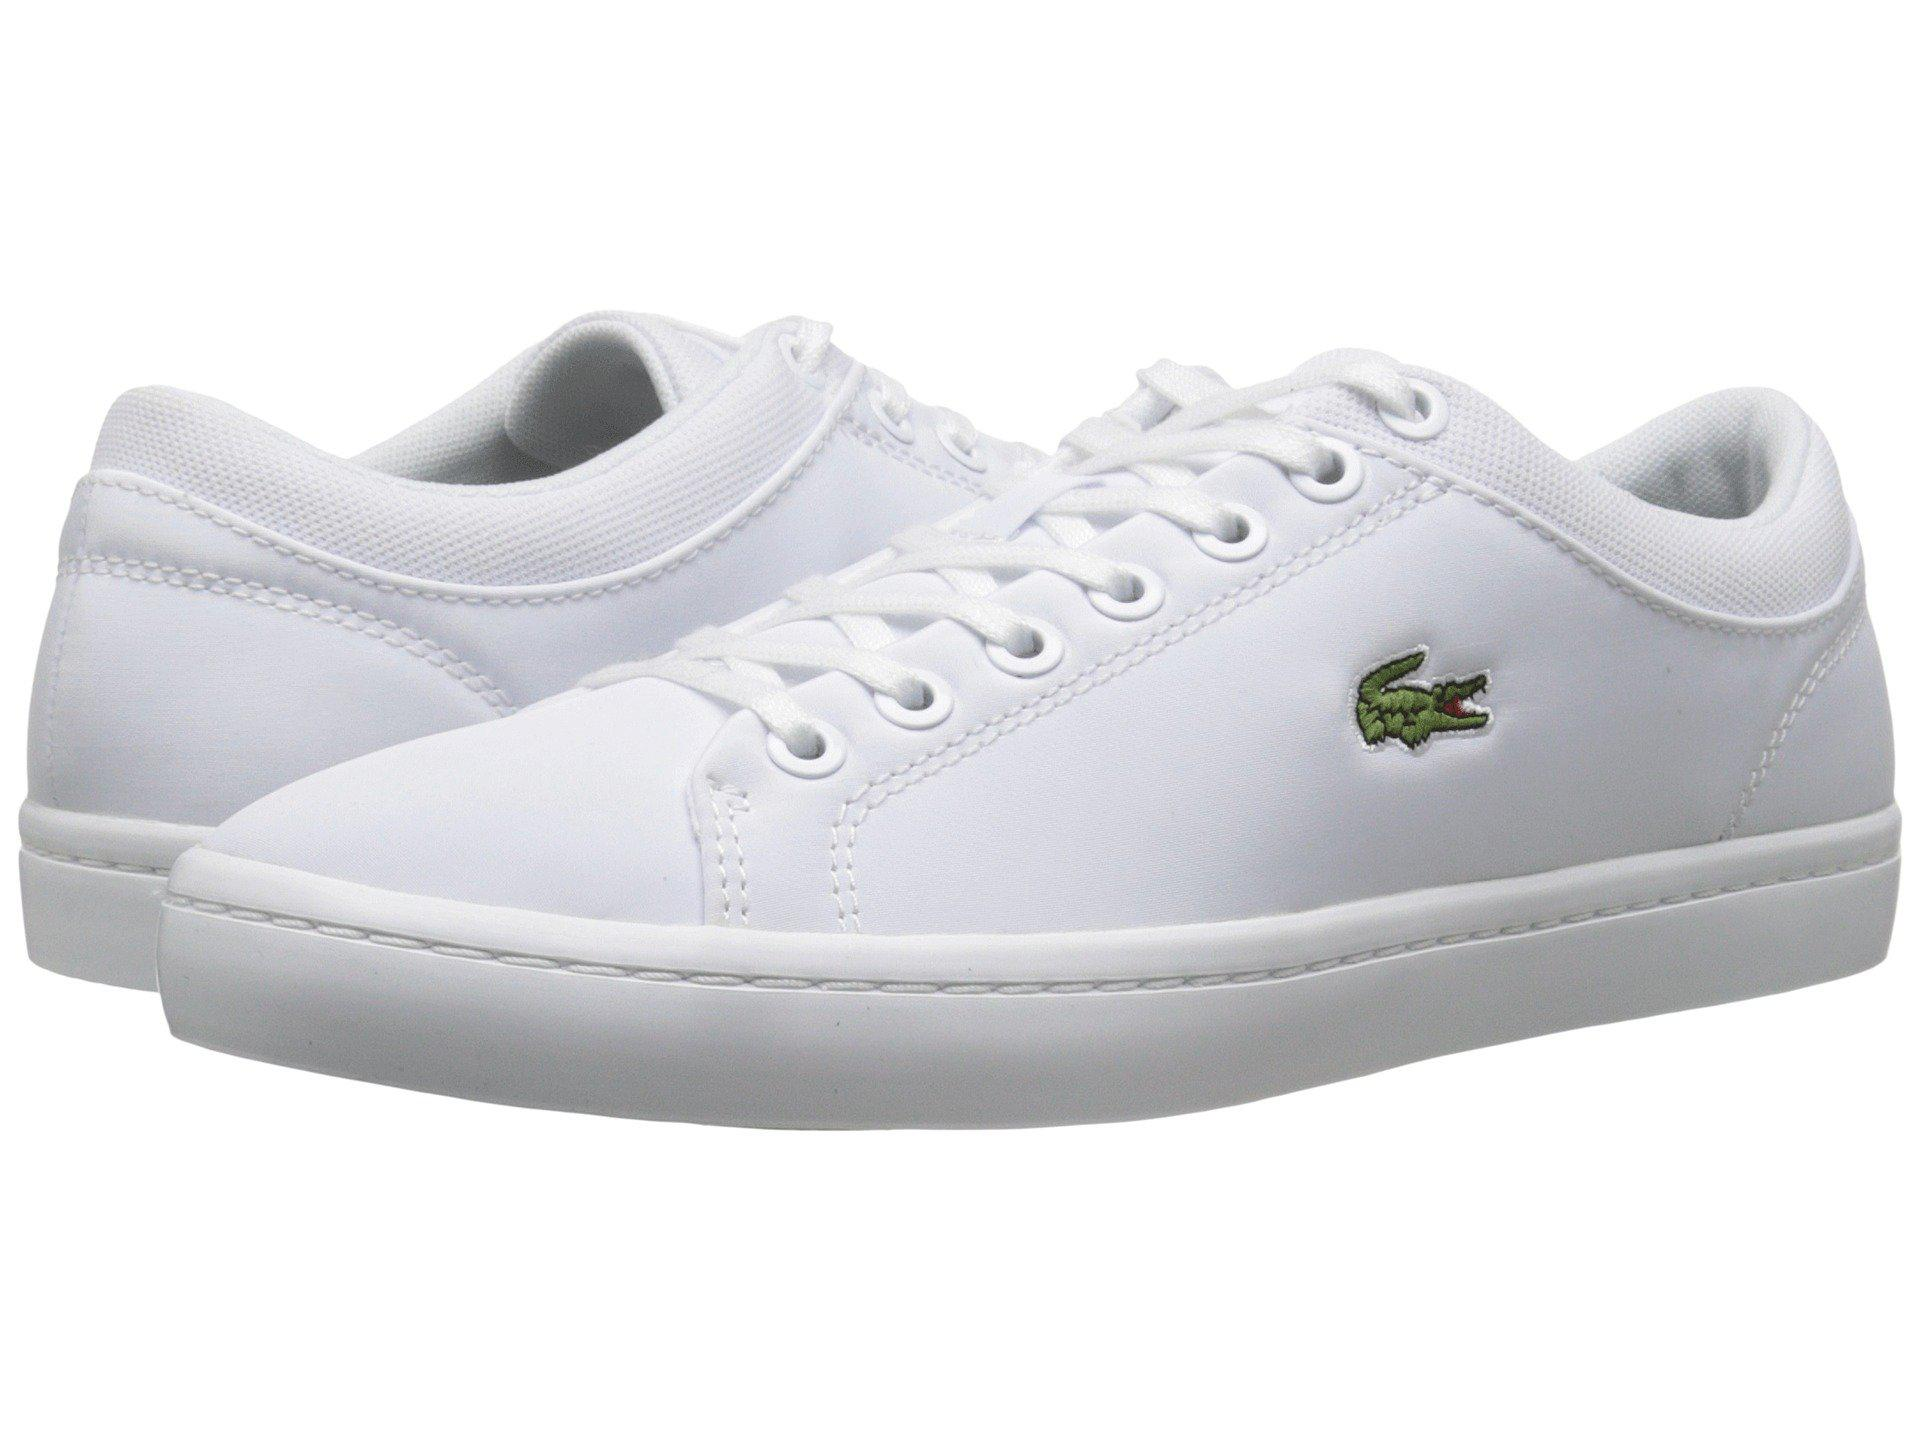 89410ffd6a906 Lyst - Lacoste Straightset Spt 216 1 Fashion Sneaker in White for Men